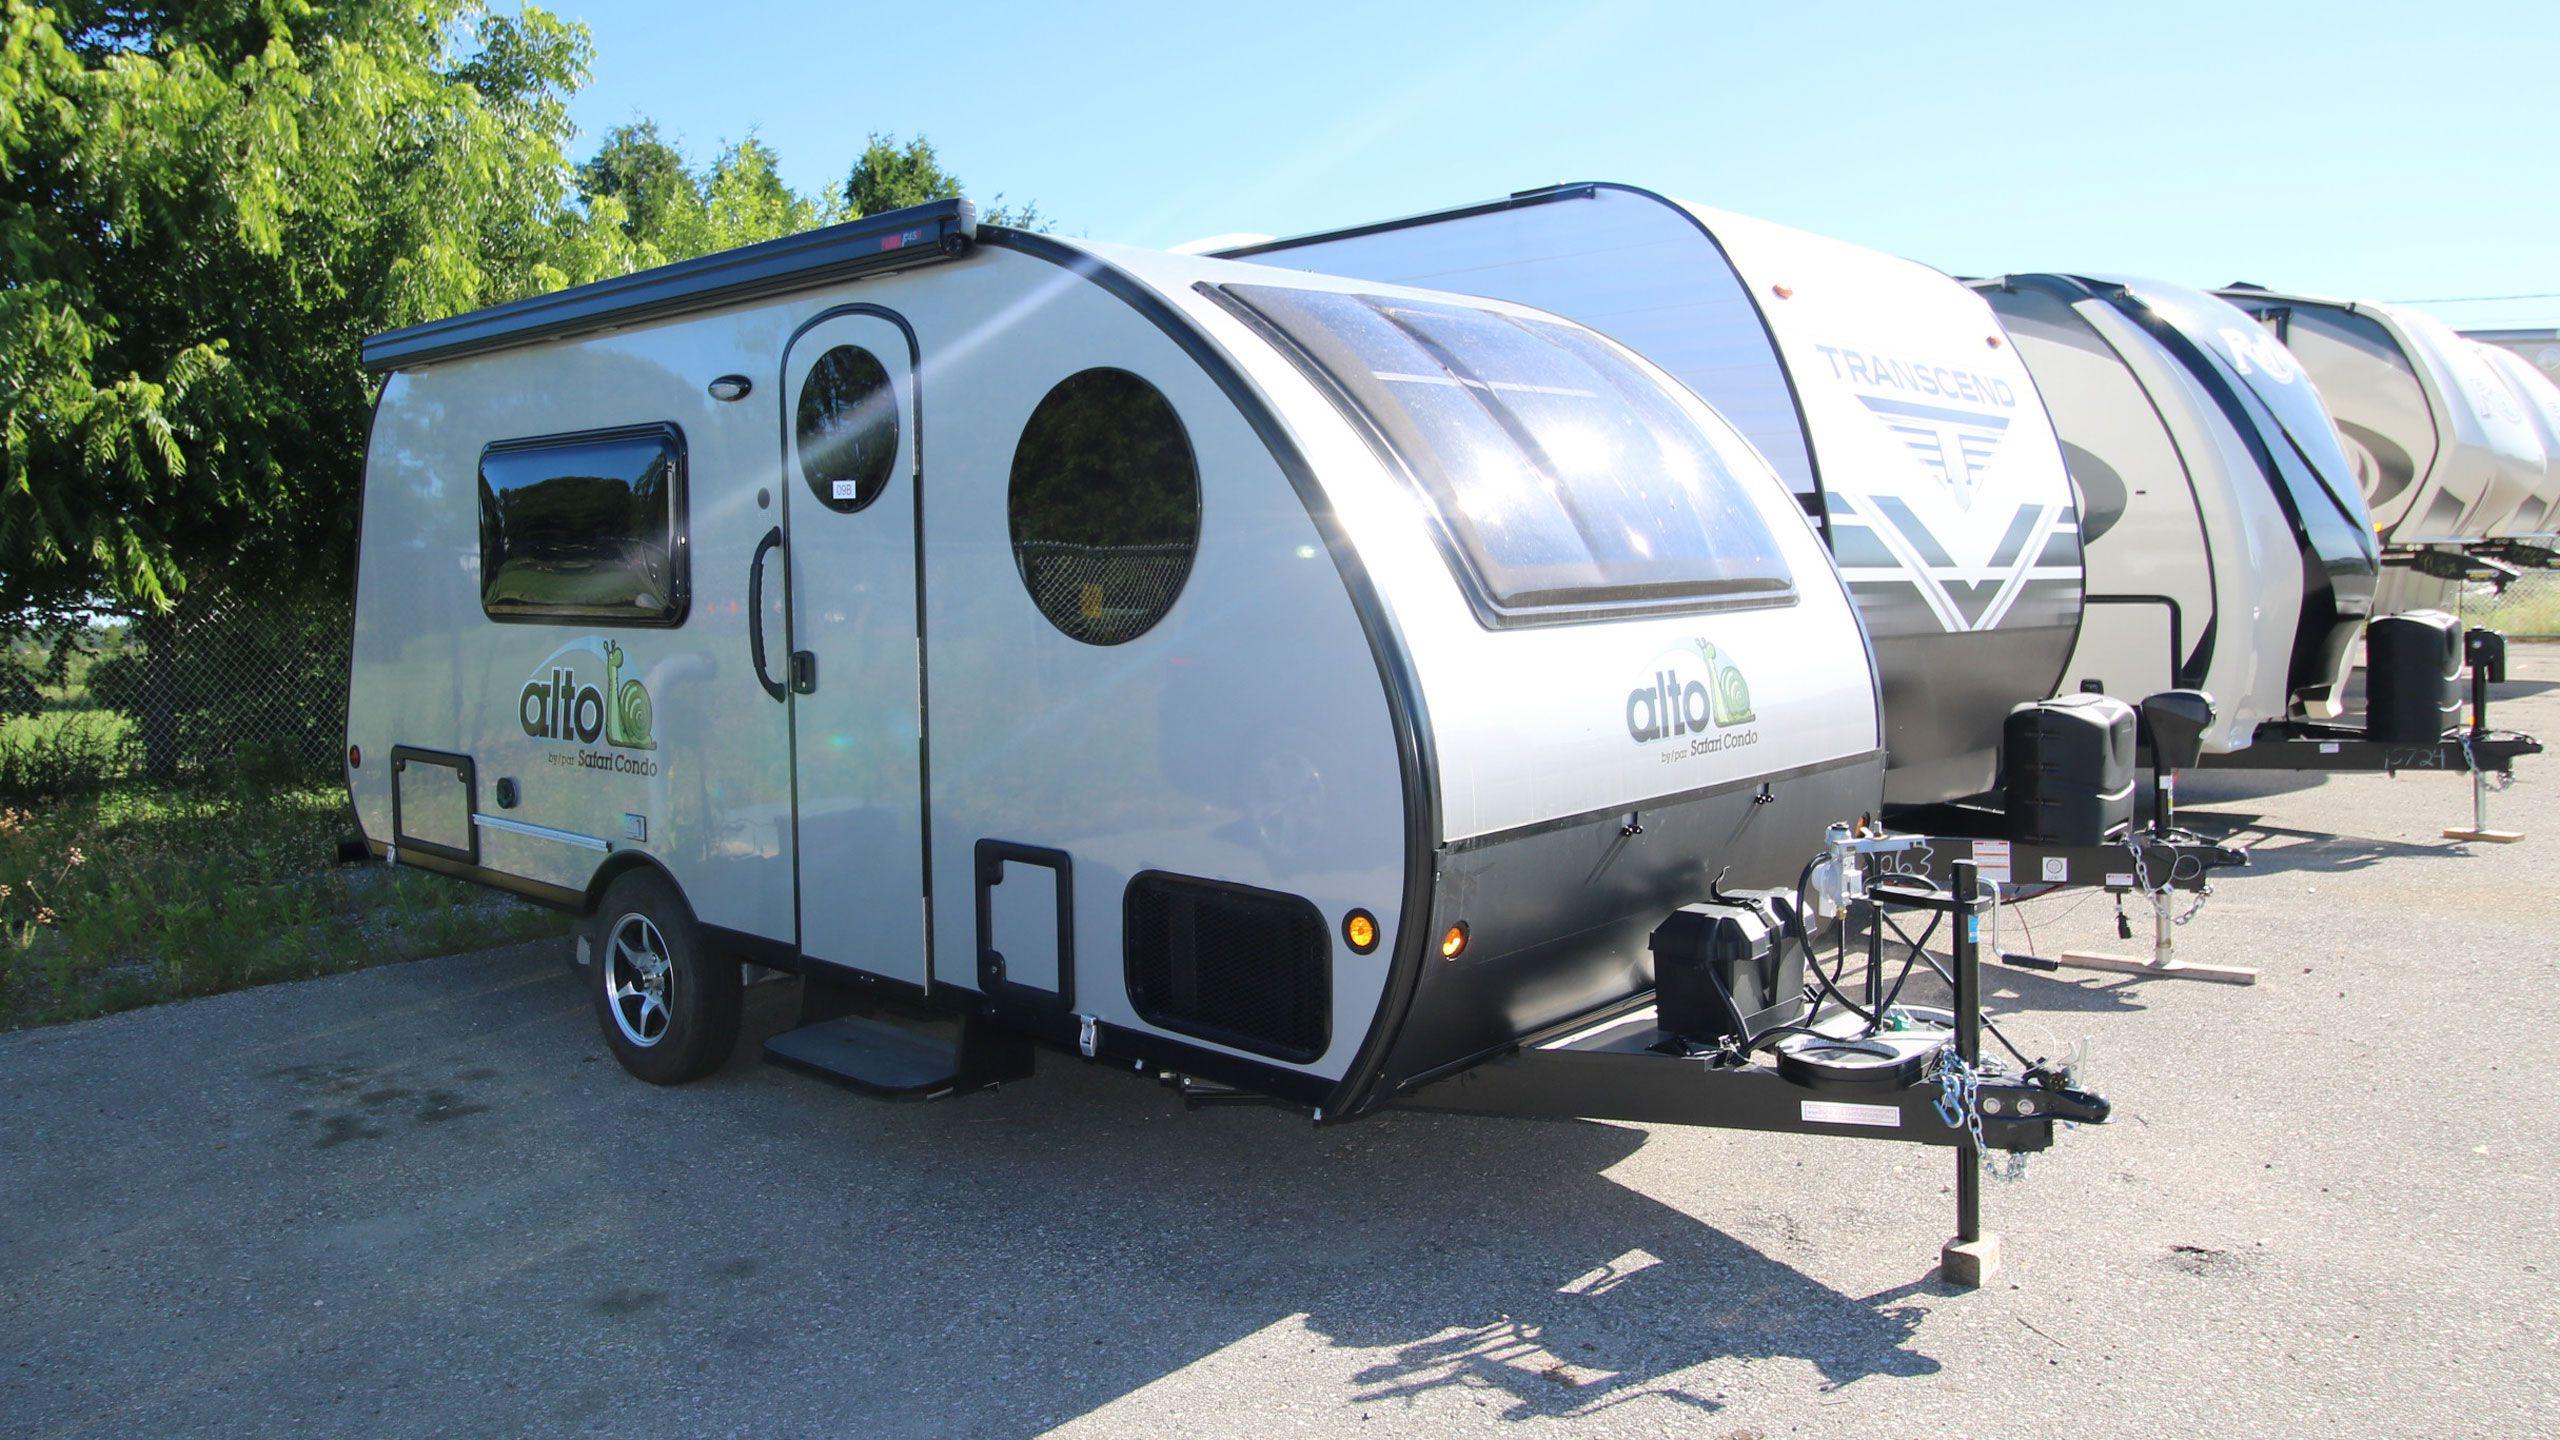 View Can-Am RV Centre RVs for sale | 31 - 40 of 103 units